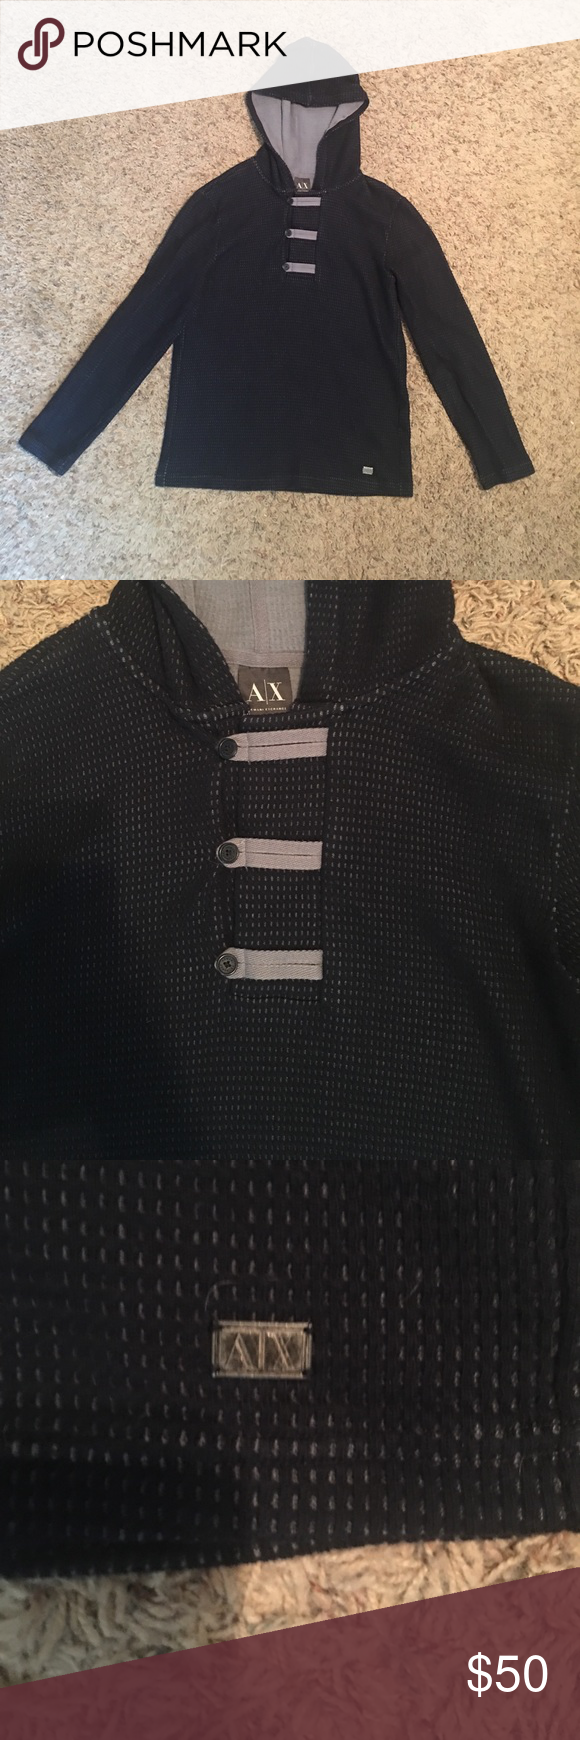 Men's Armani Exchange sweater! 100% cotton size XL blue sweater. Great condition with a hood! A/X Armani Exchange Sweaters